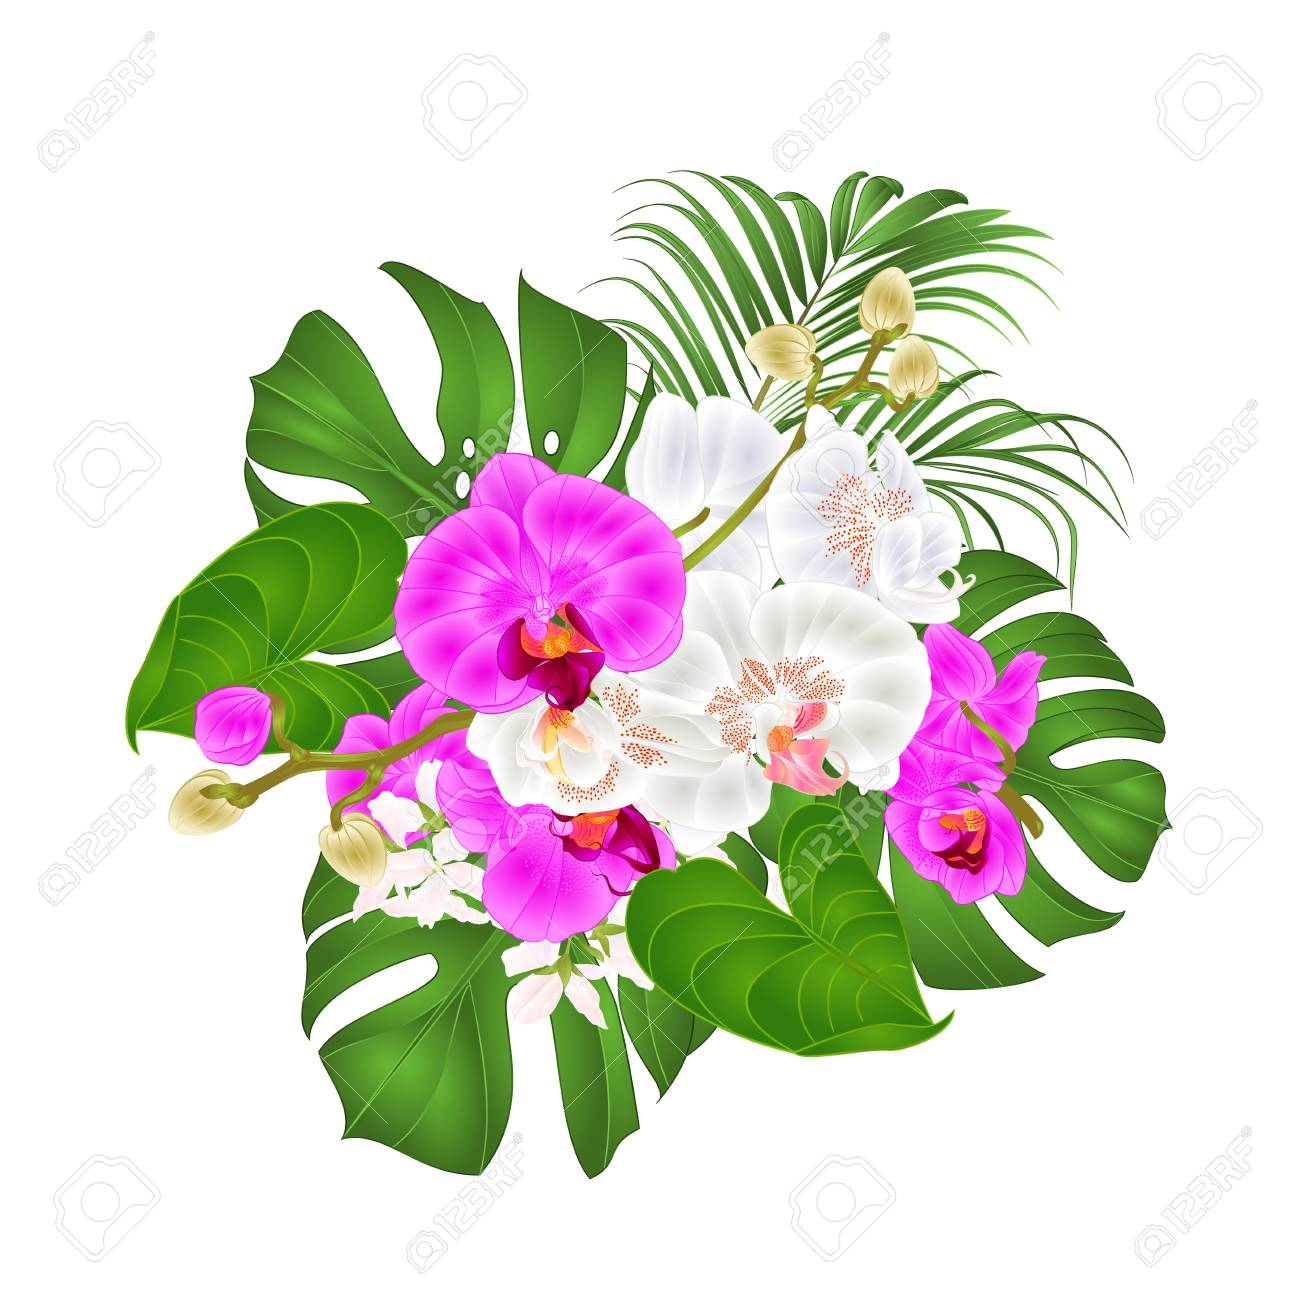 Bouquet With Tropical Flowers Floral Arrangement With Beautiful Royalty Free Cliparts Vectors And Stock Illustration Image 113721570